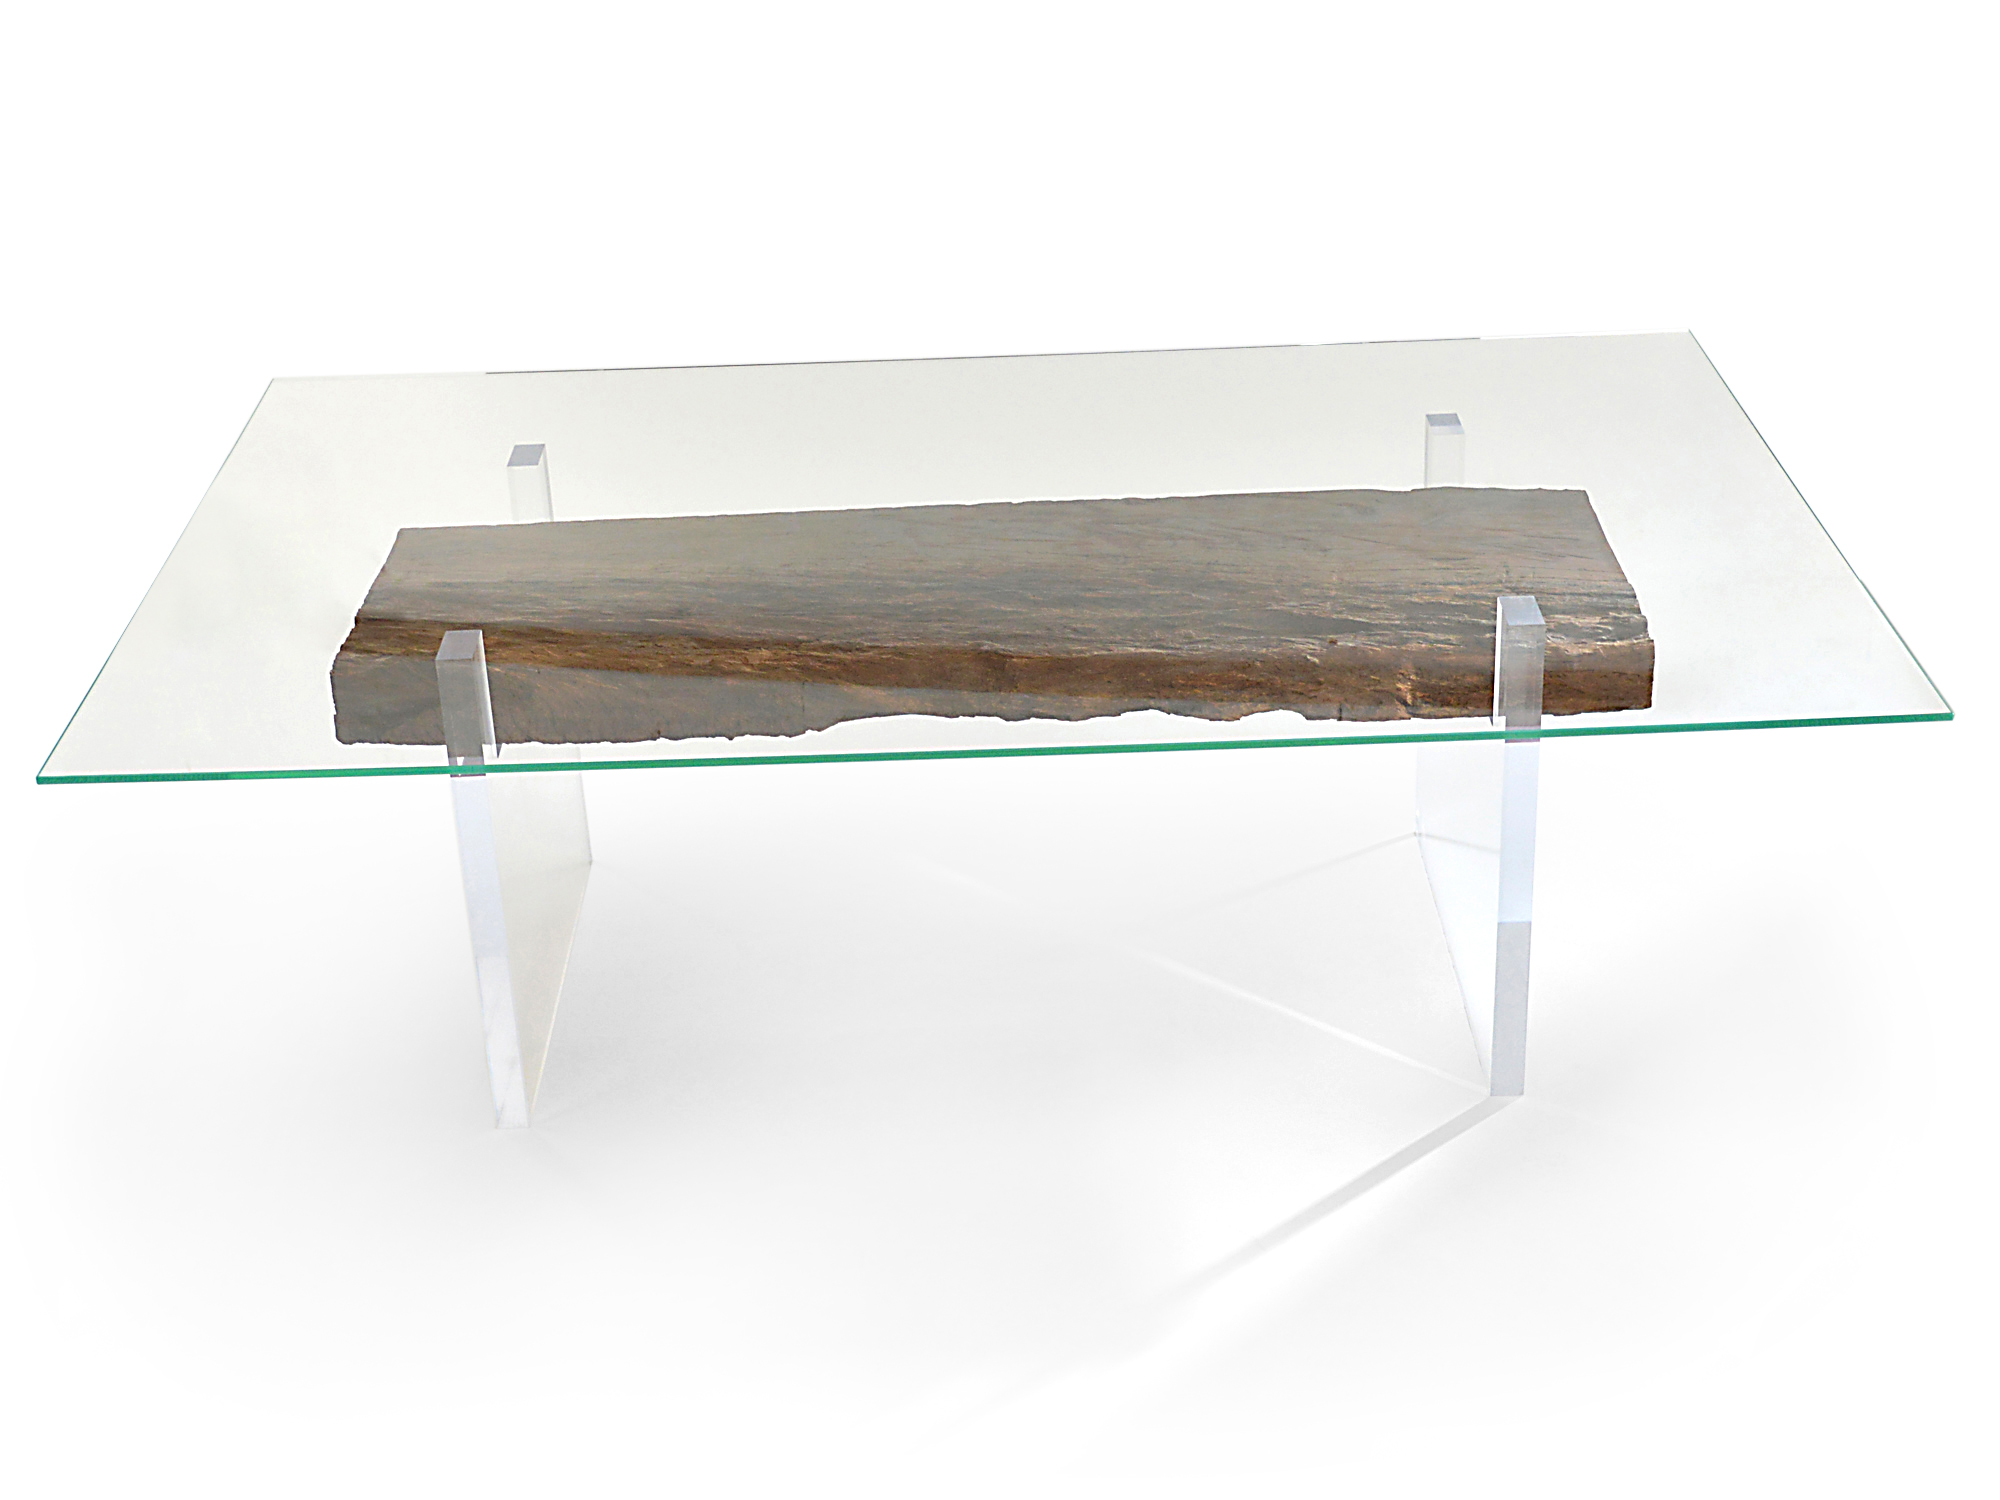 Rotsen-Furniture-Oitis Acrylic Dining Table - Glass Top 05